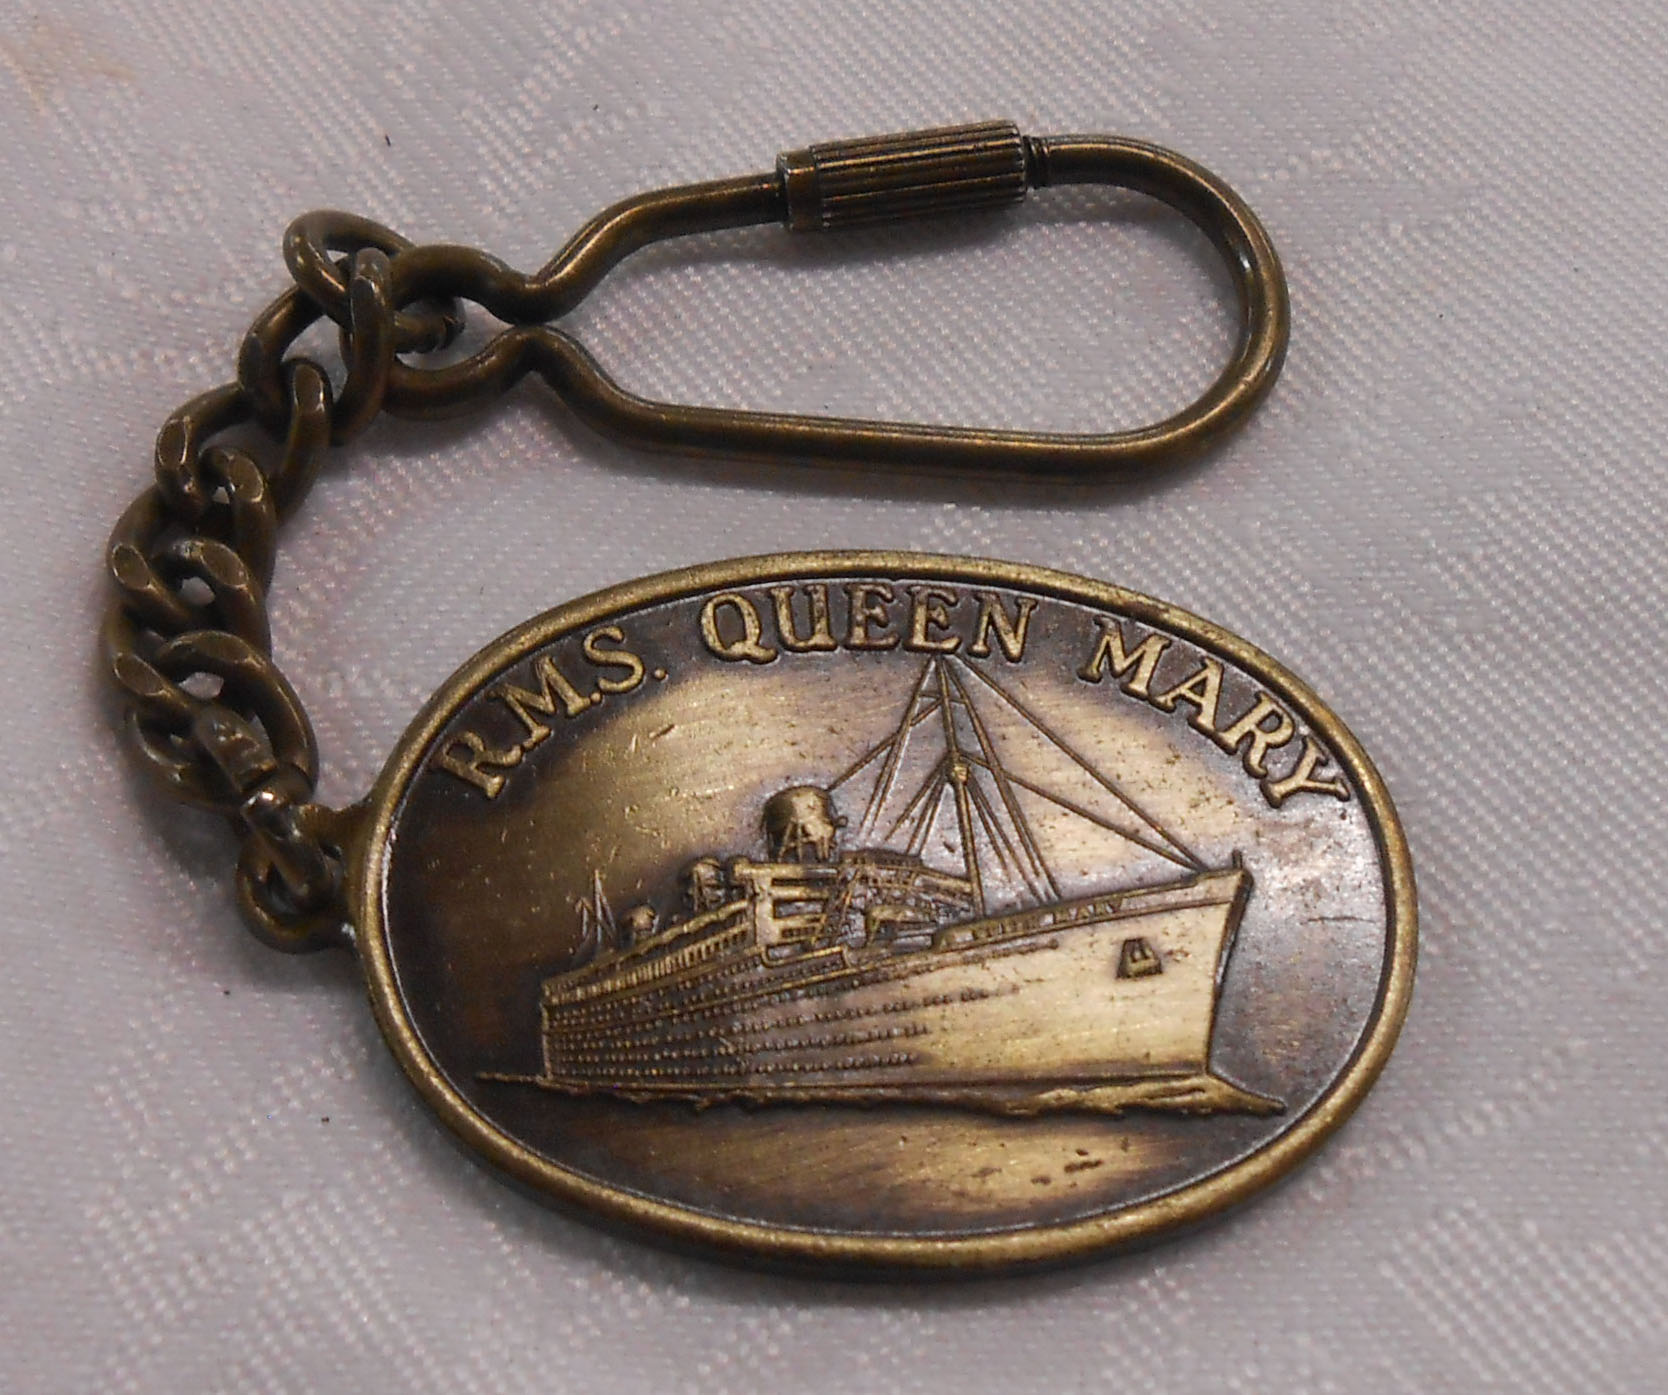 A 20th Century RMS Queen Mary keyring formed from metal taken from the ship's propeller